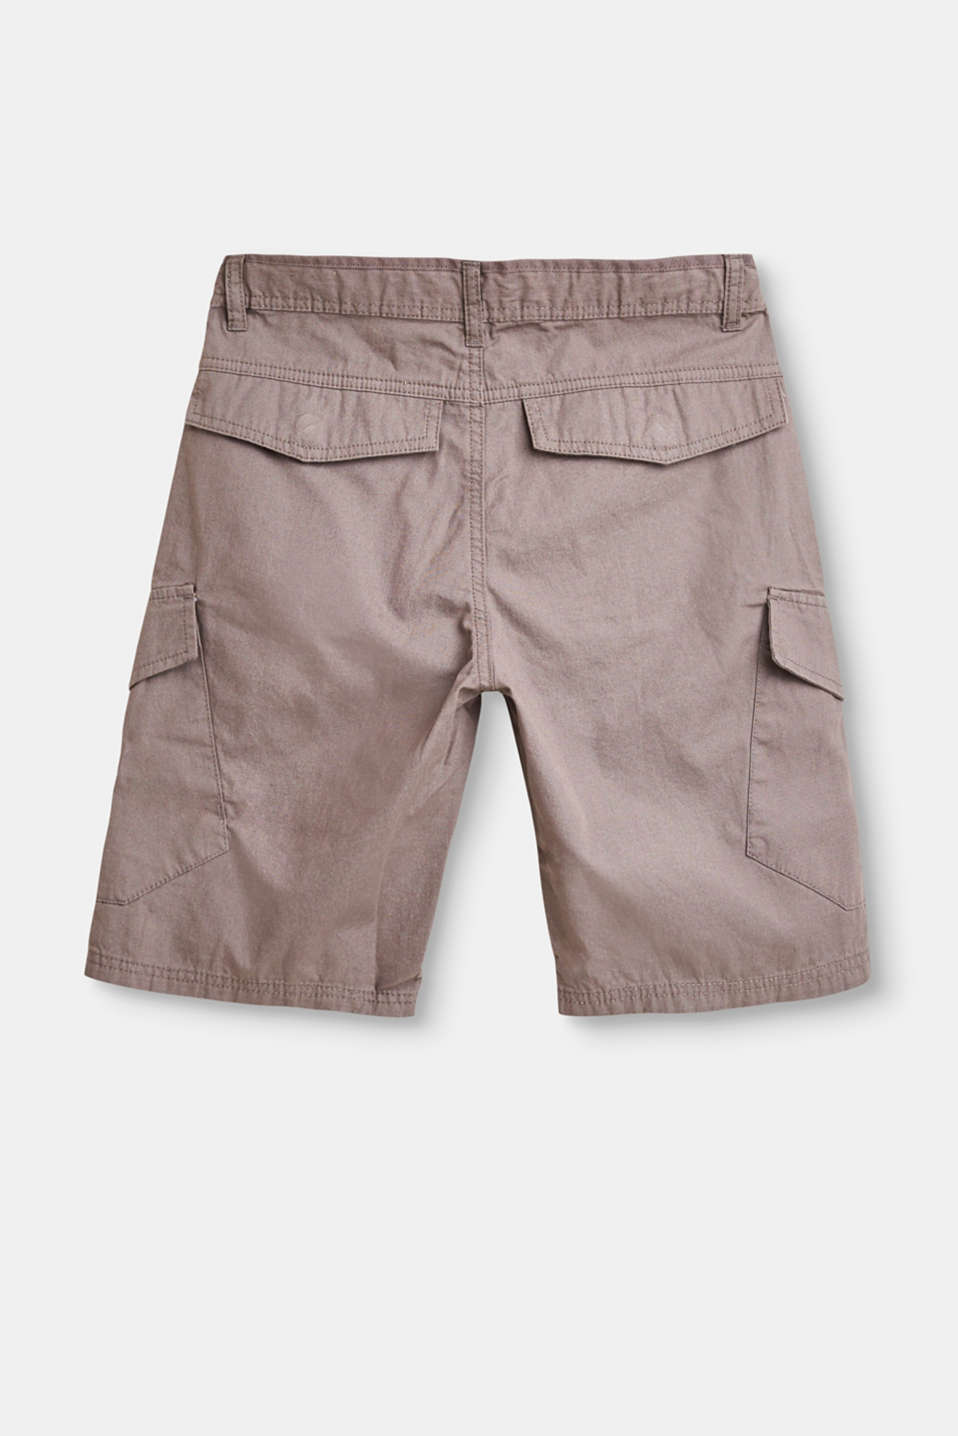 Woven cargo shorts in 100% cotton